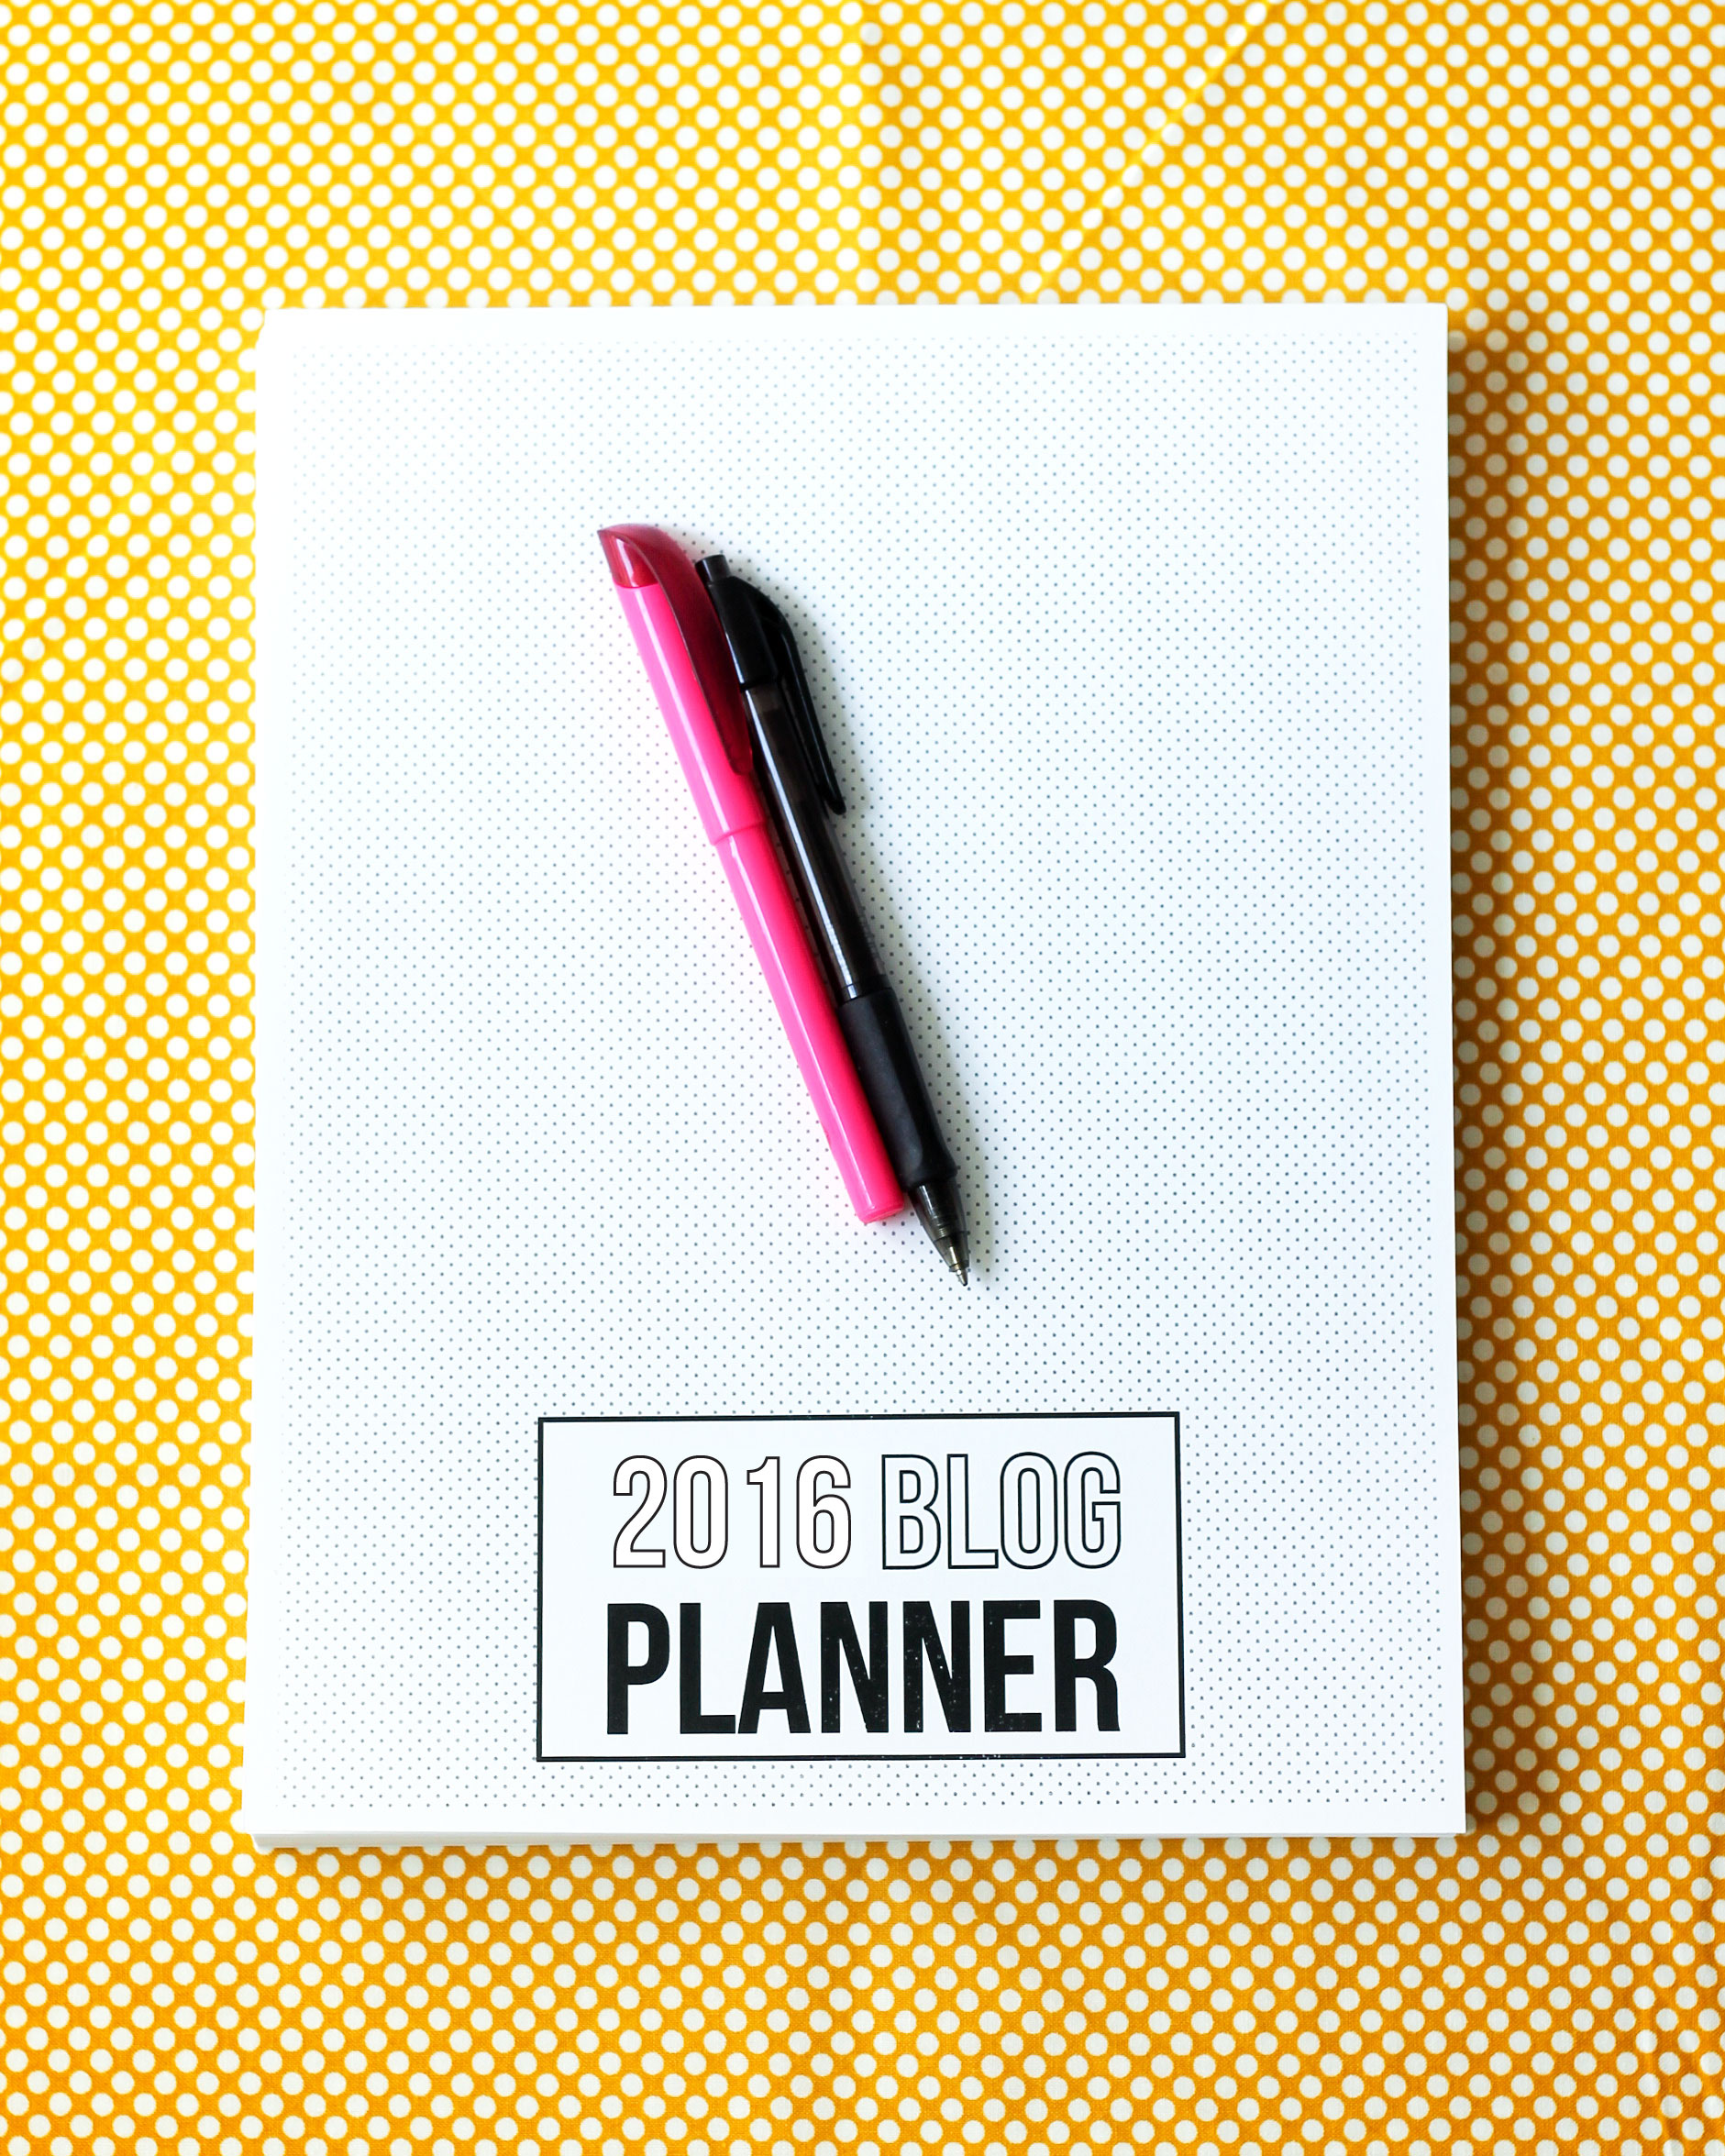 2016 Blog Planner and Editorial Calendar